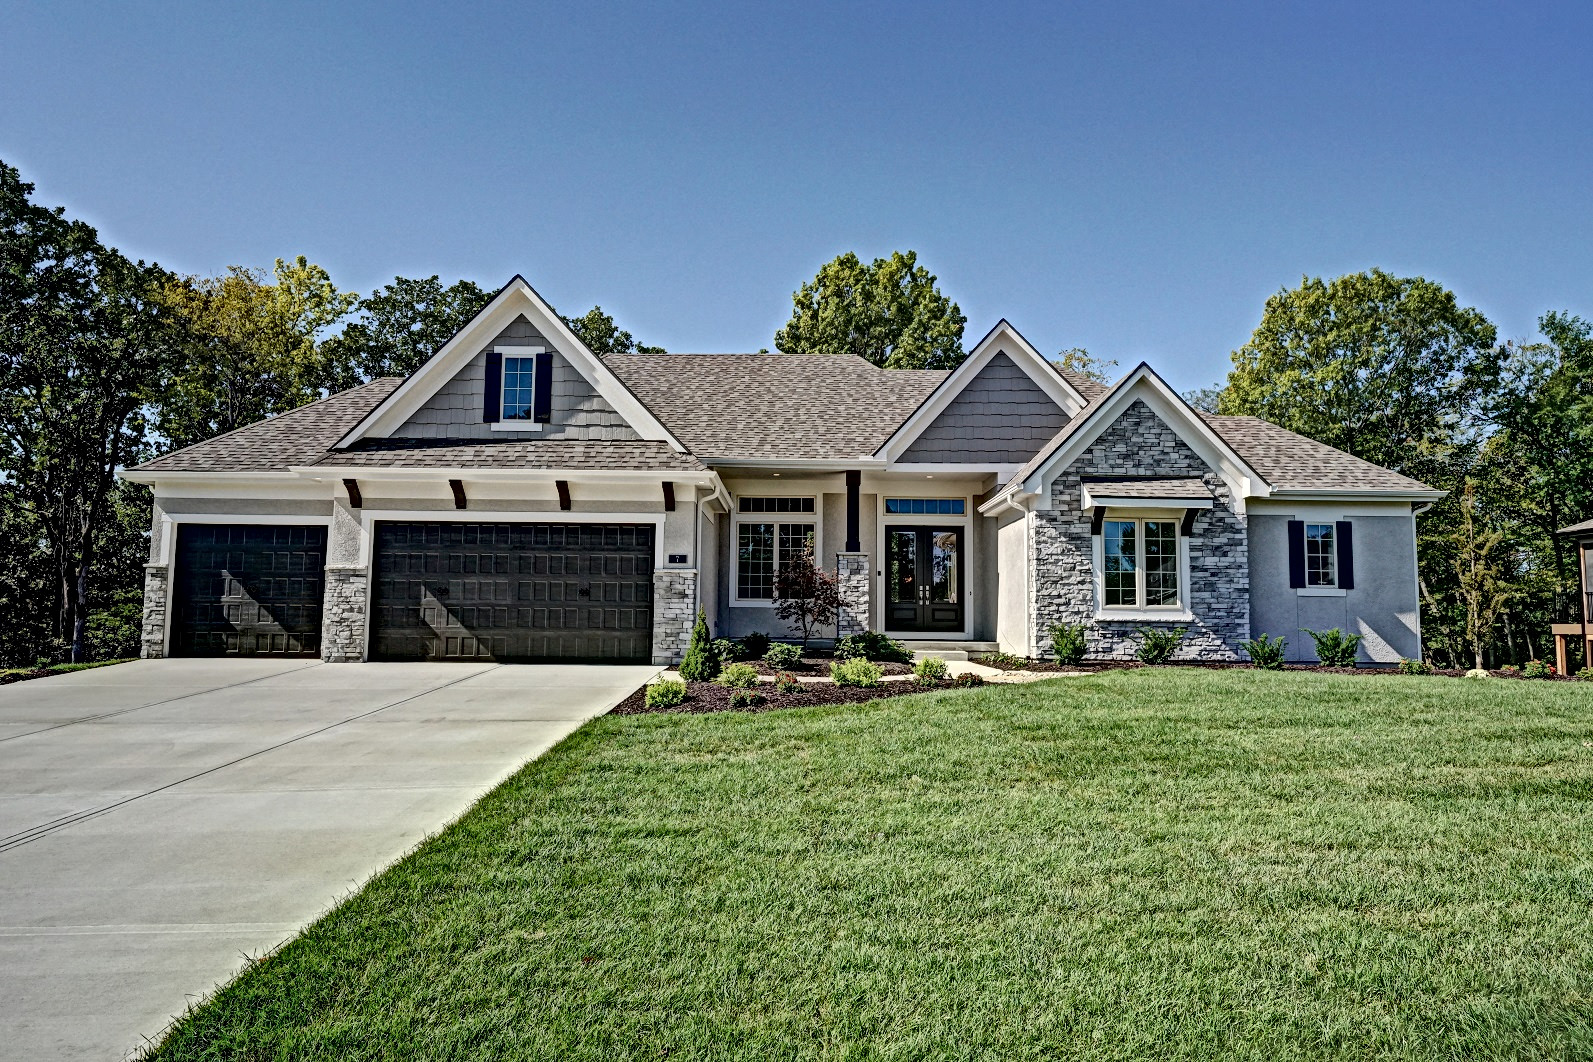 Pfeifer Homes Lot 58-4.jpg